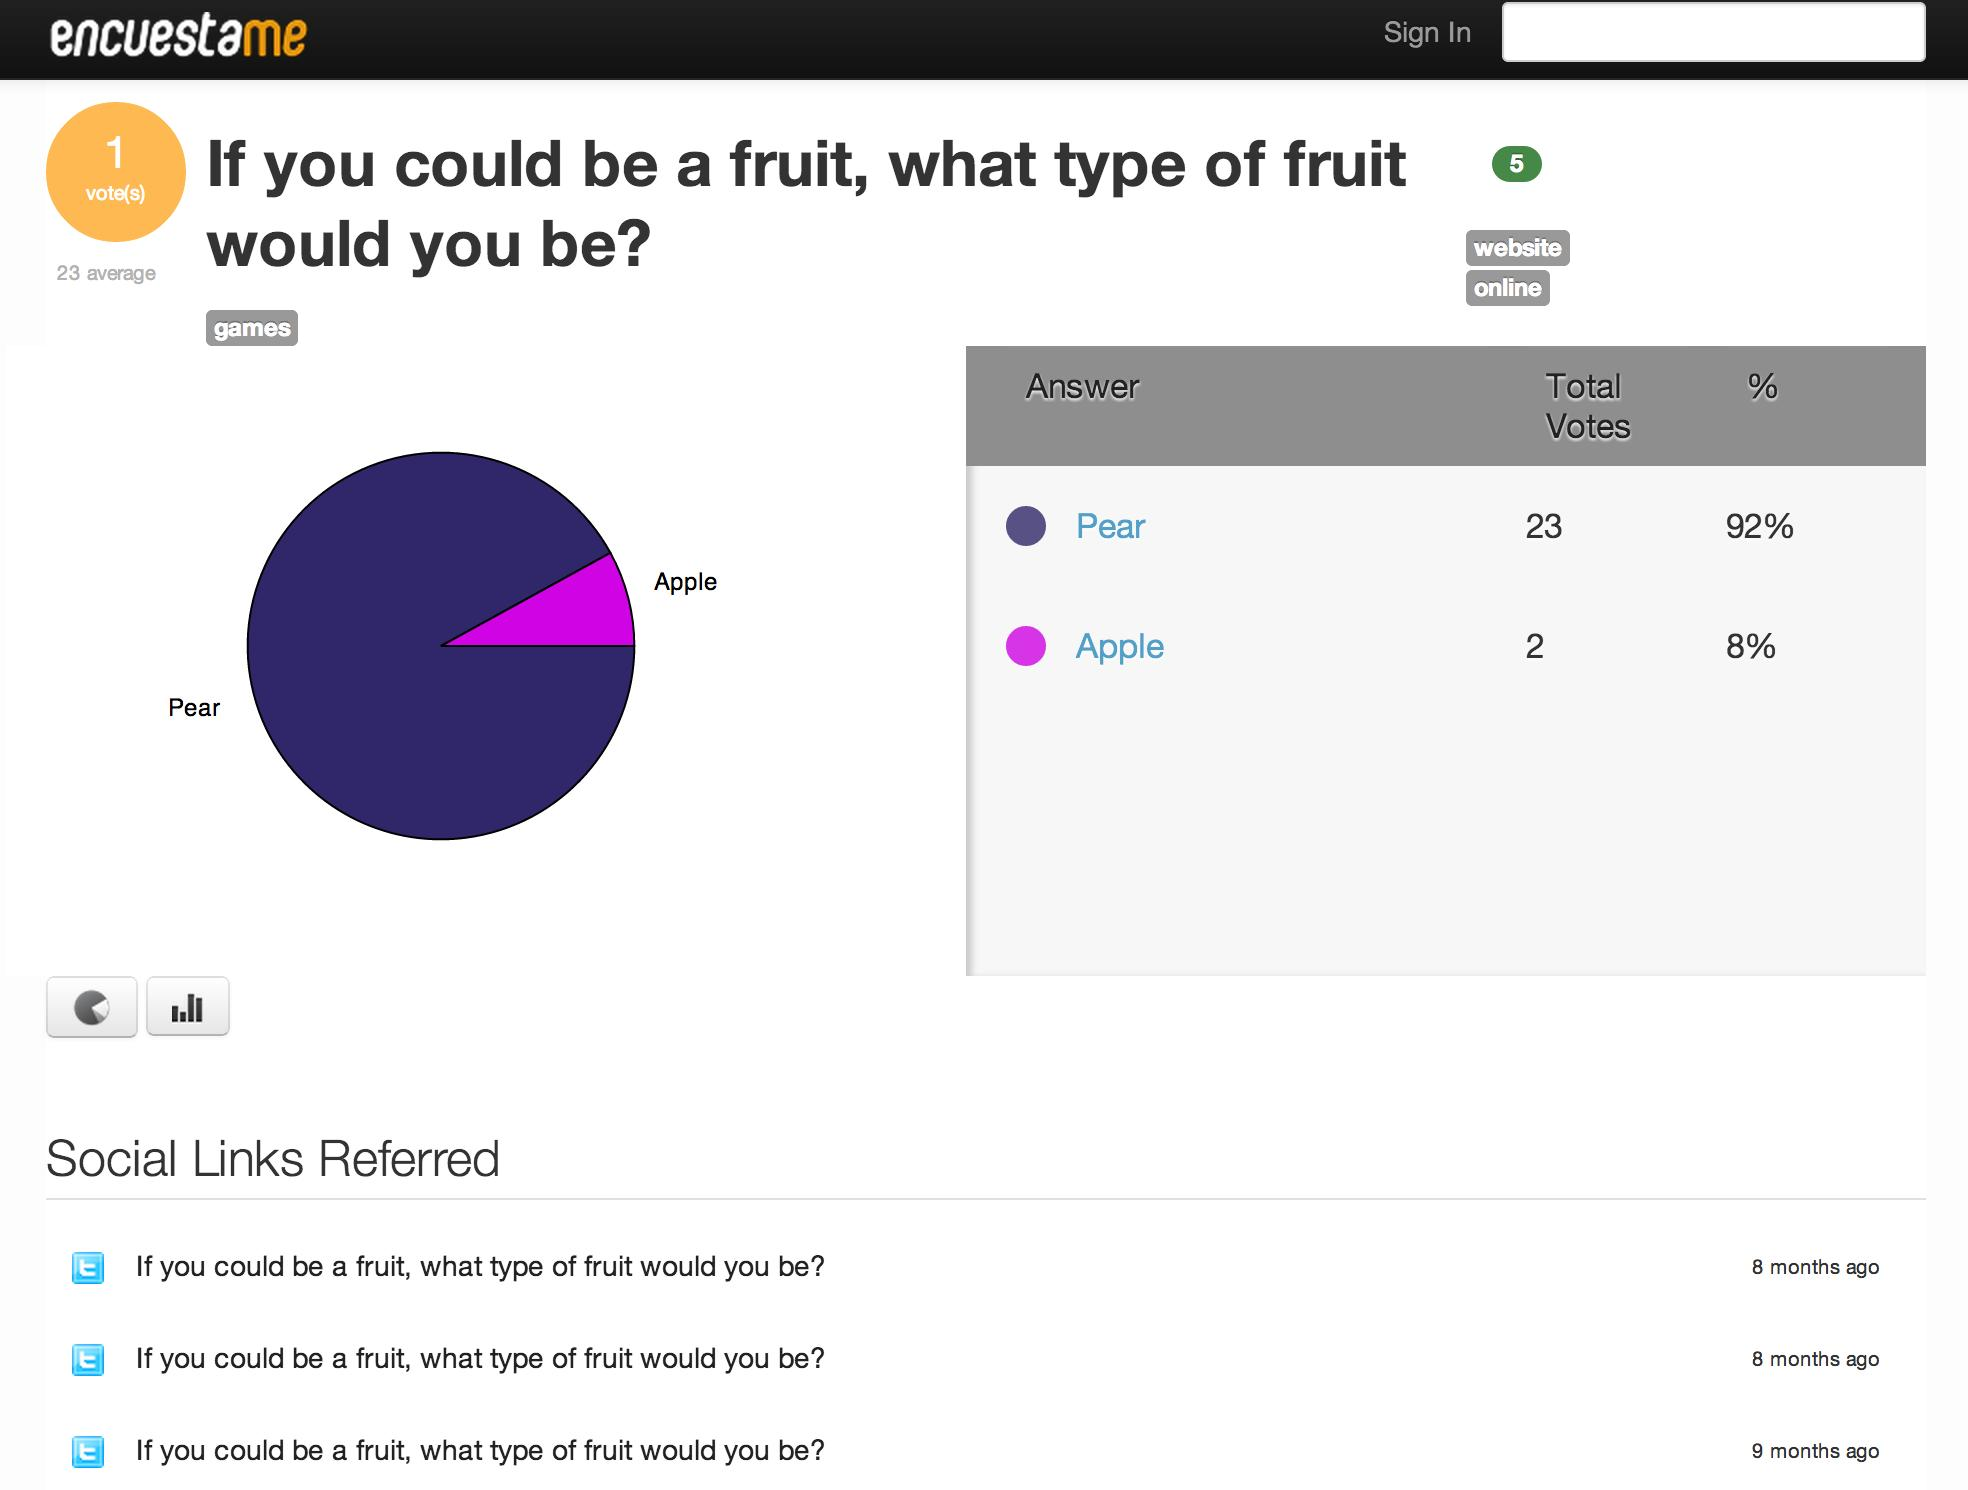 Encuestame - Each survey will have its own page where users can vote and see the results